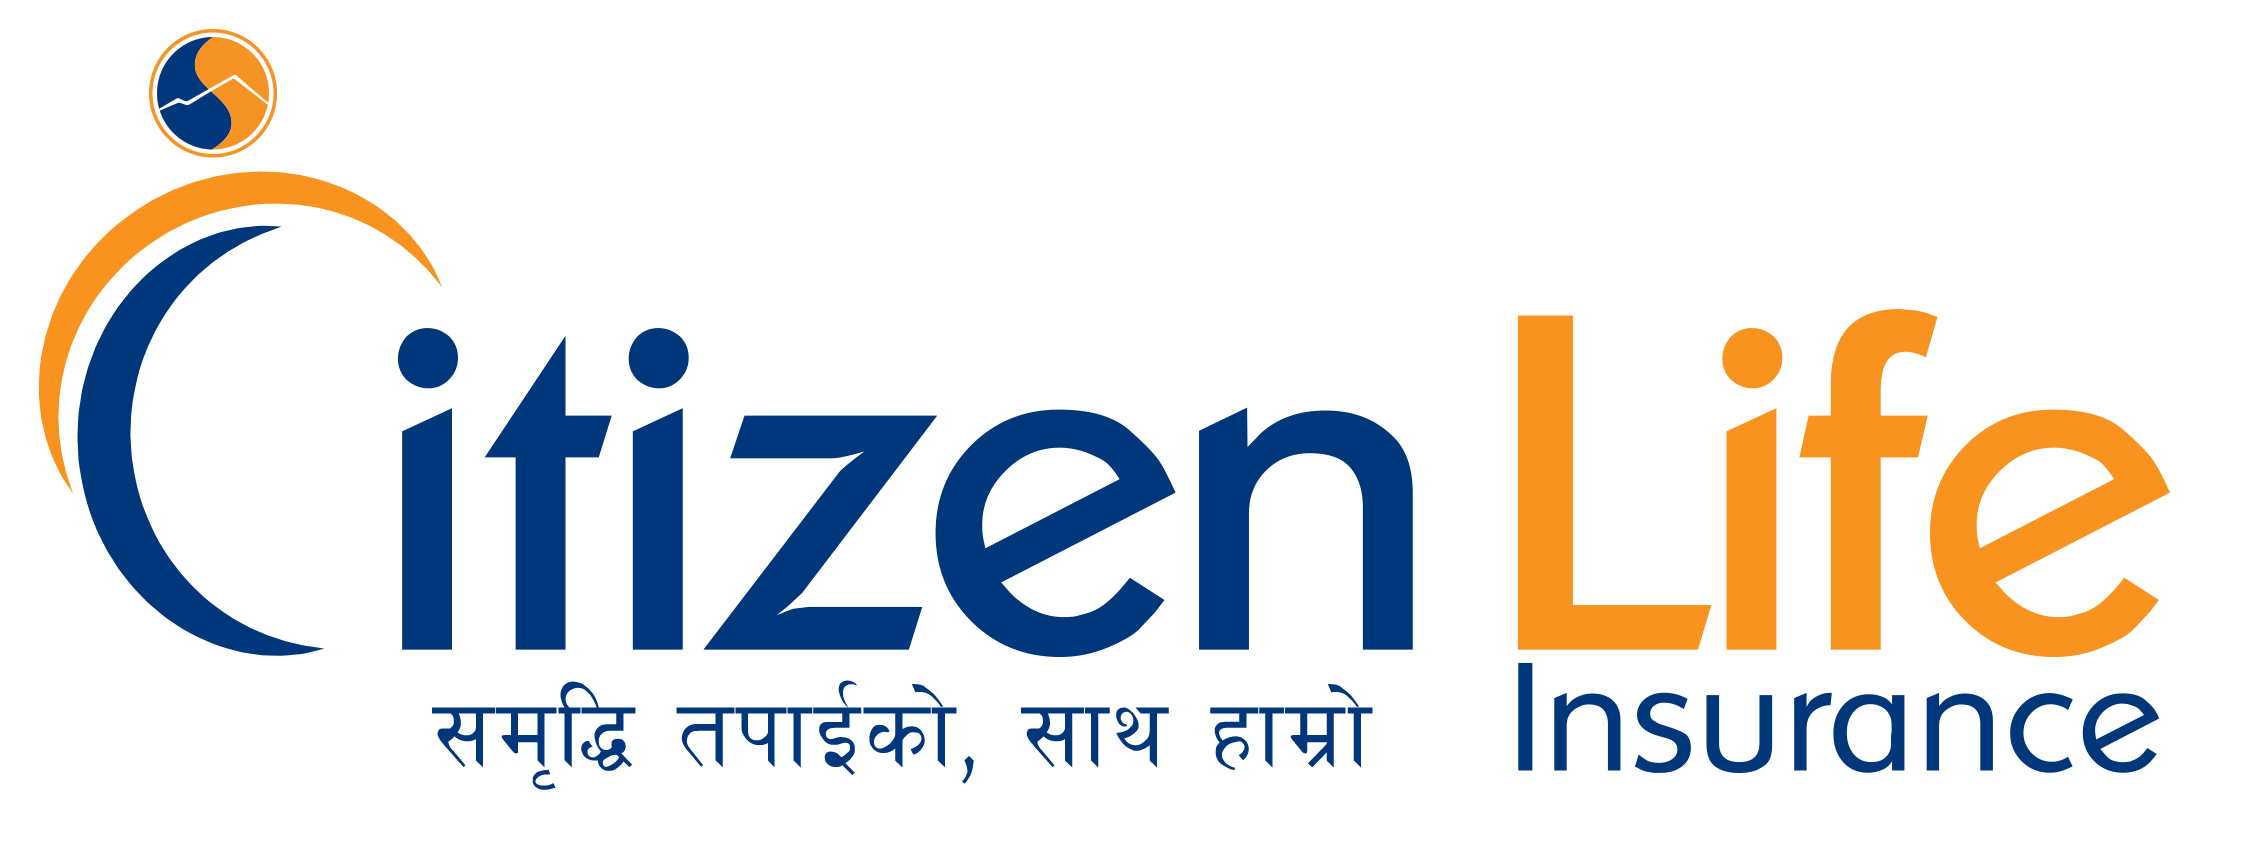 Citizen Life Insurance gears up for IPO Issuance